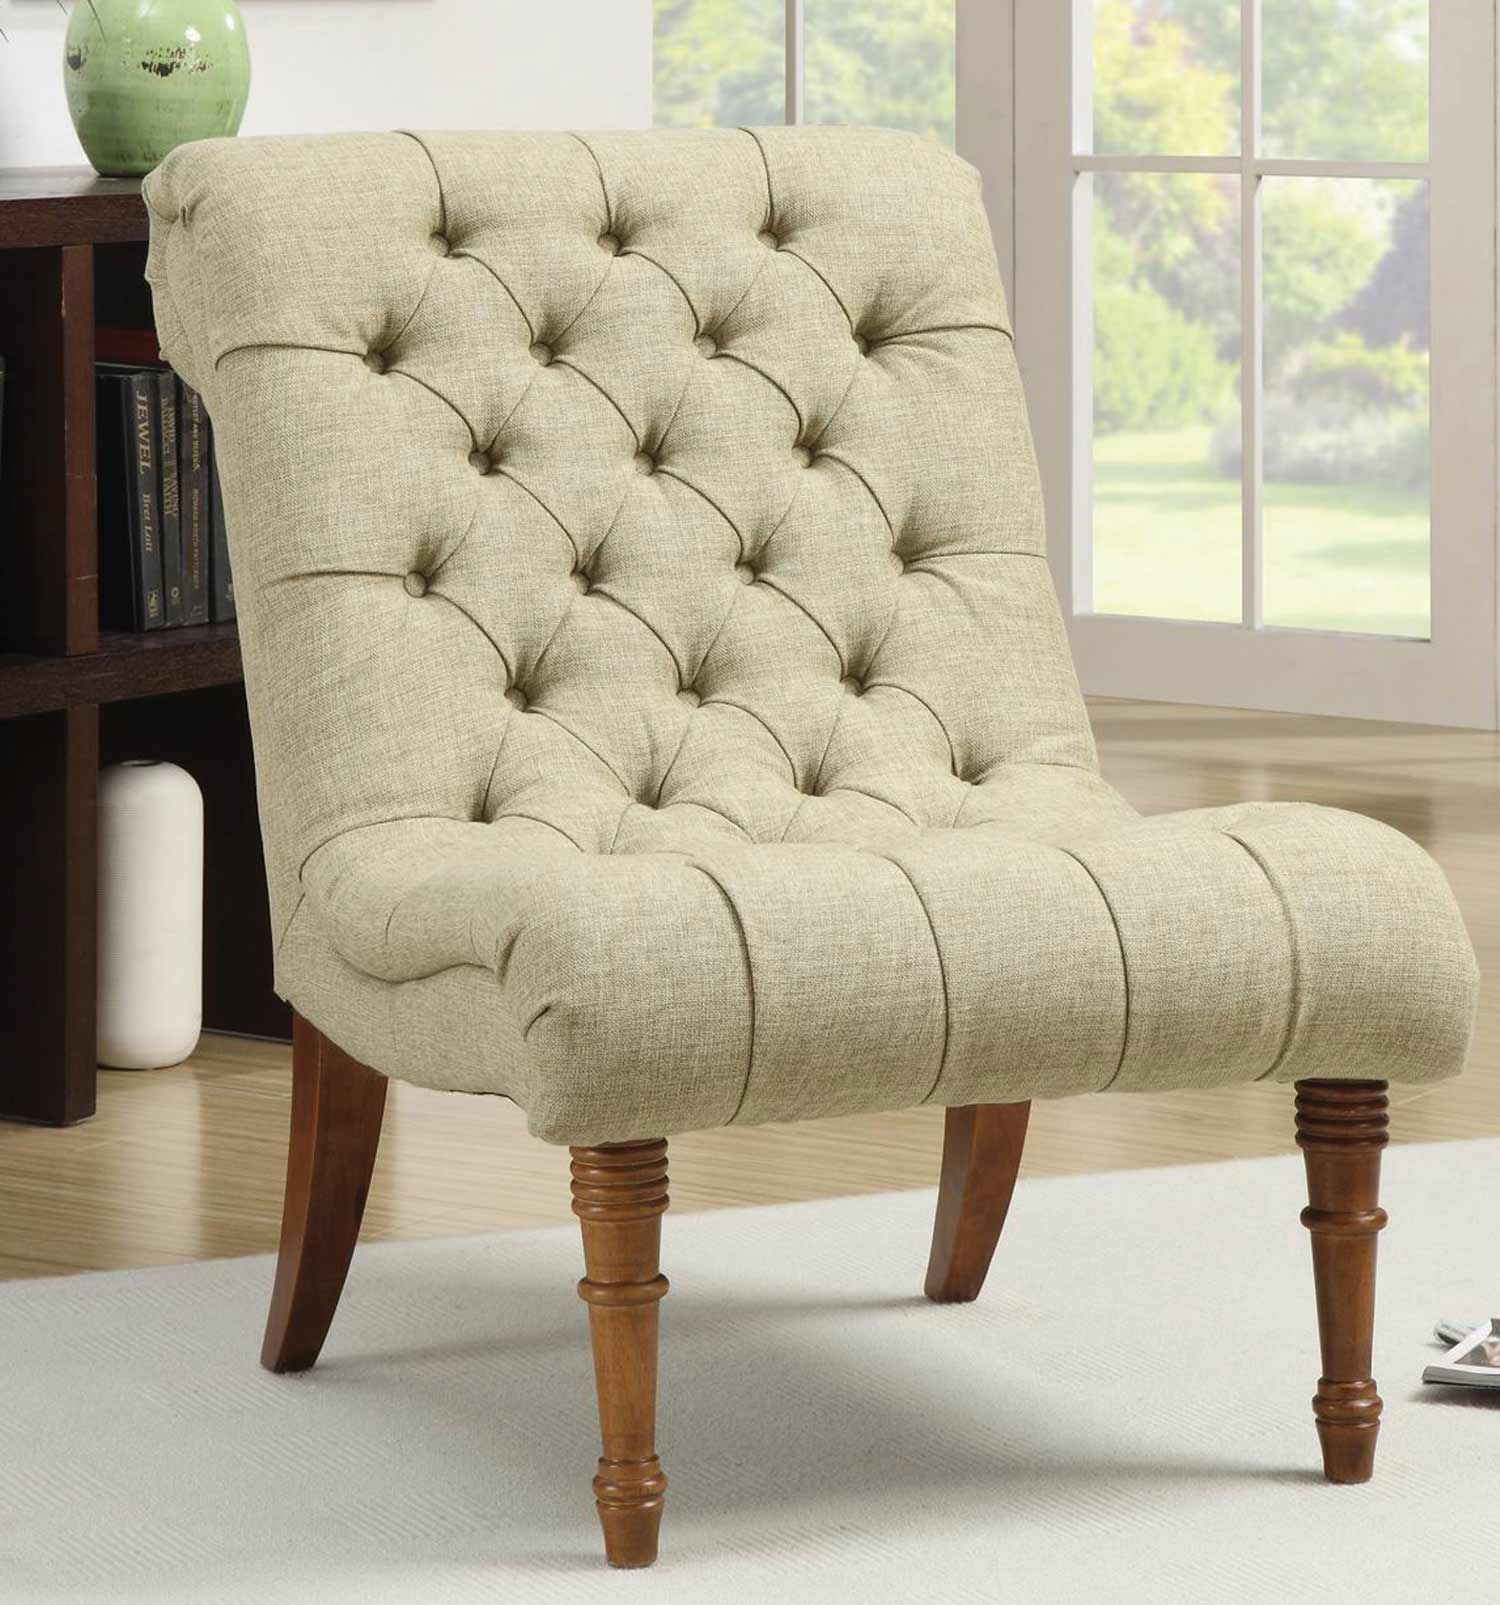 902218 Accent Chair - Mossy Green